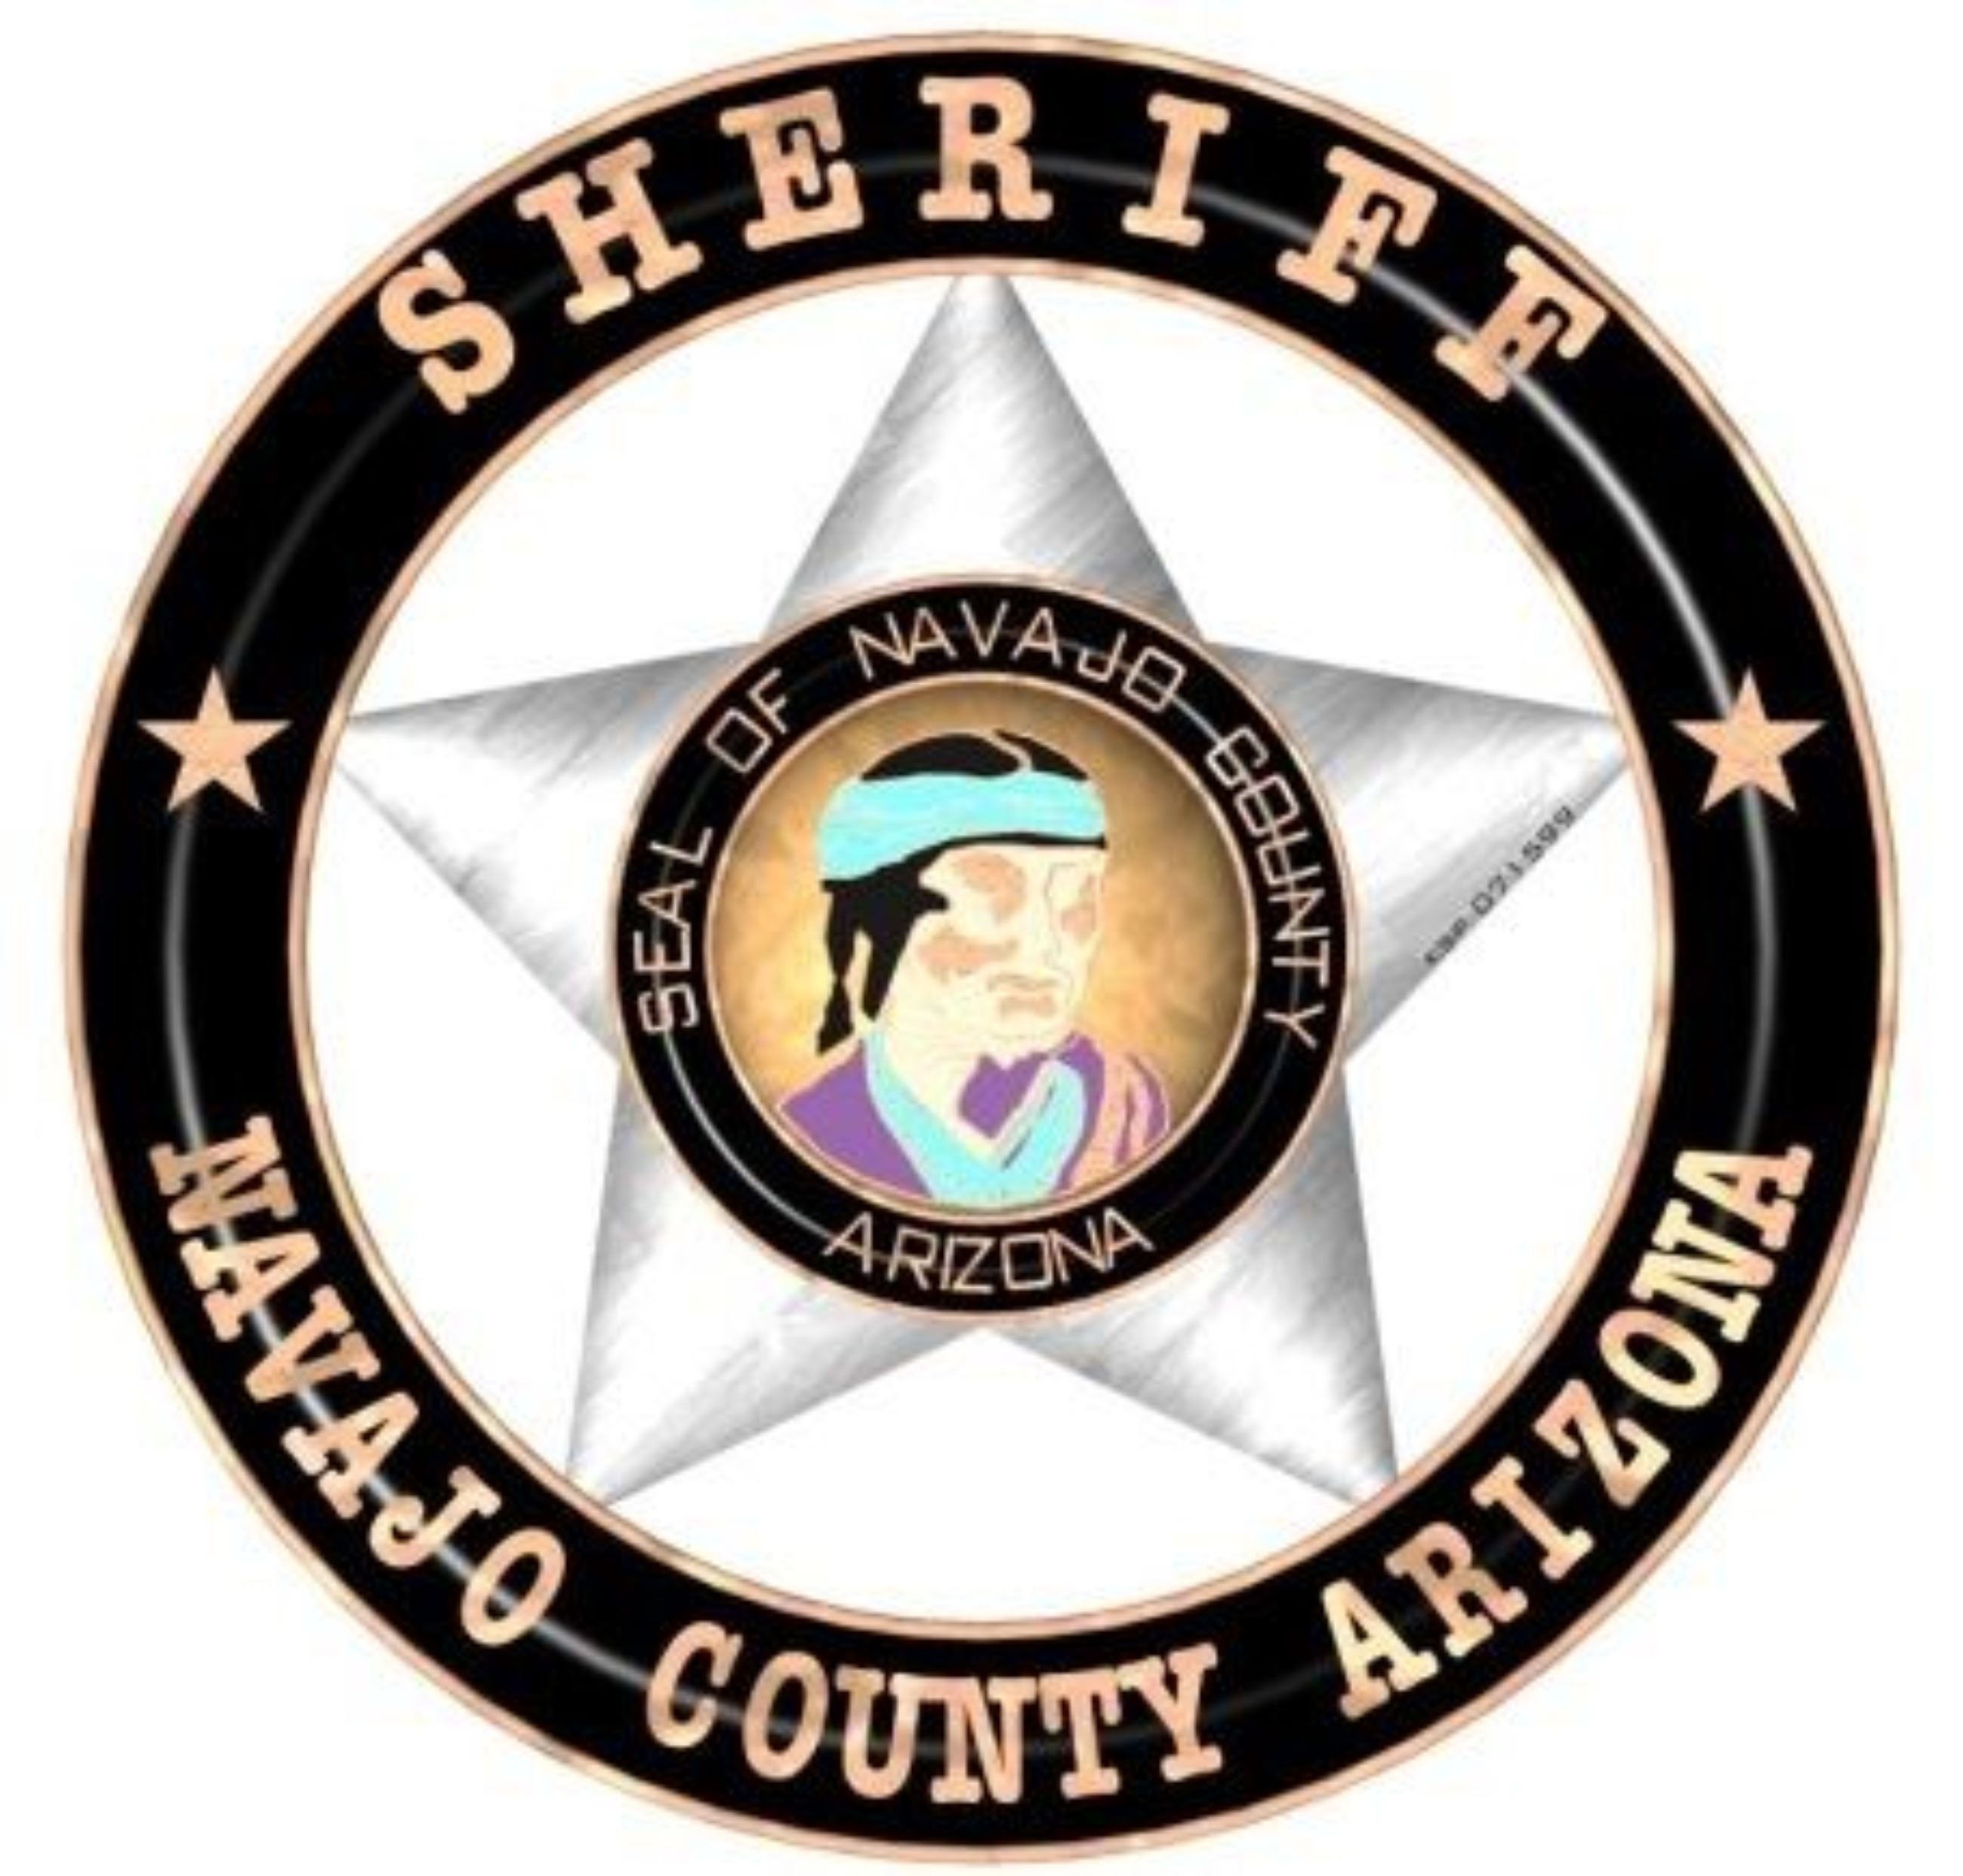 Navajo County Sheriffs Office Shield